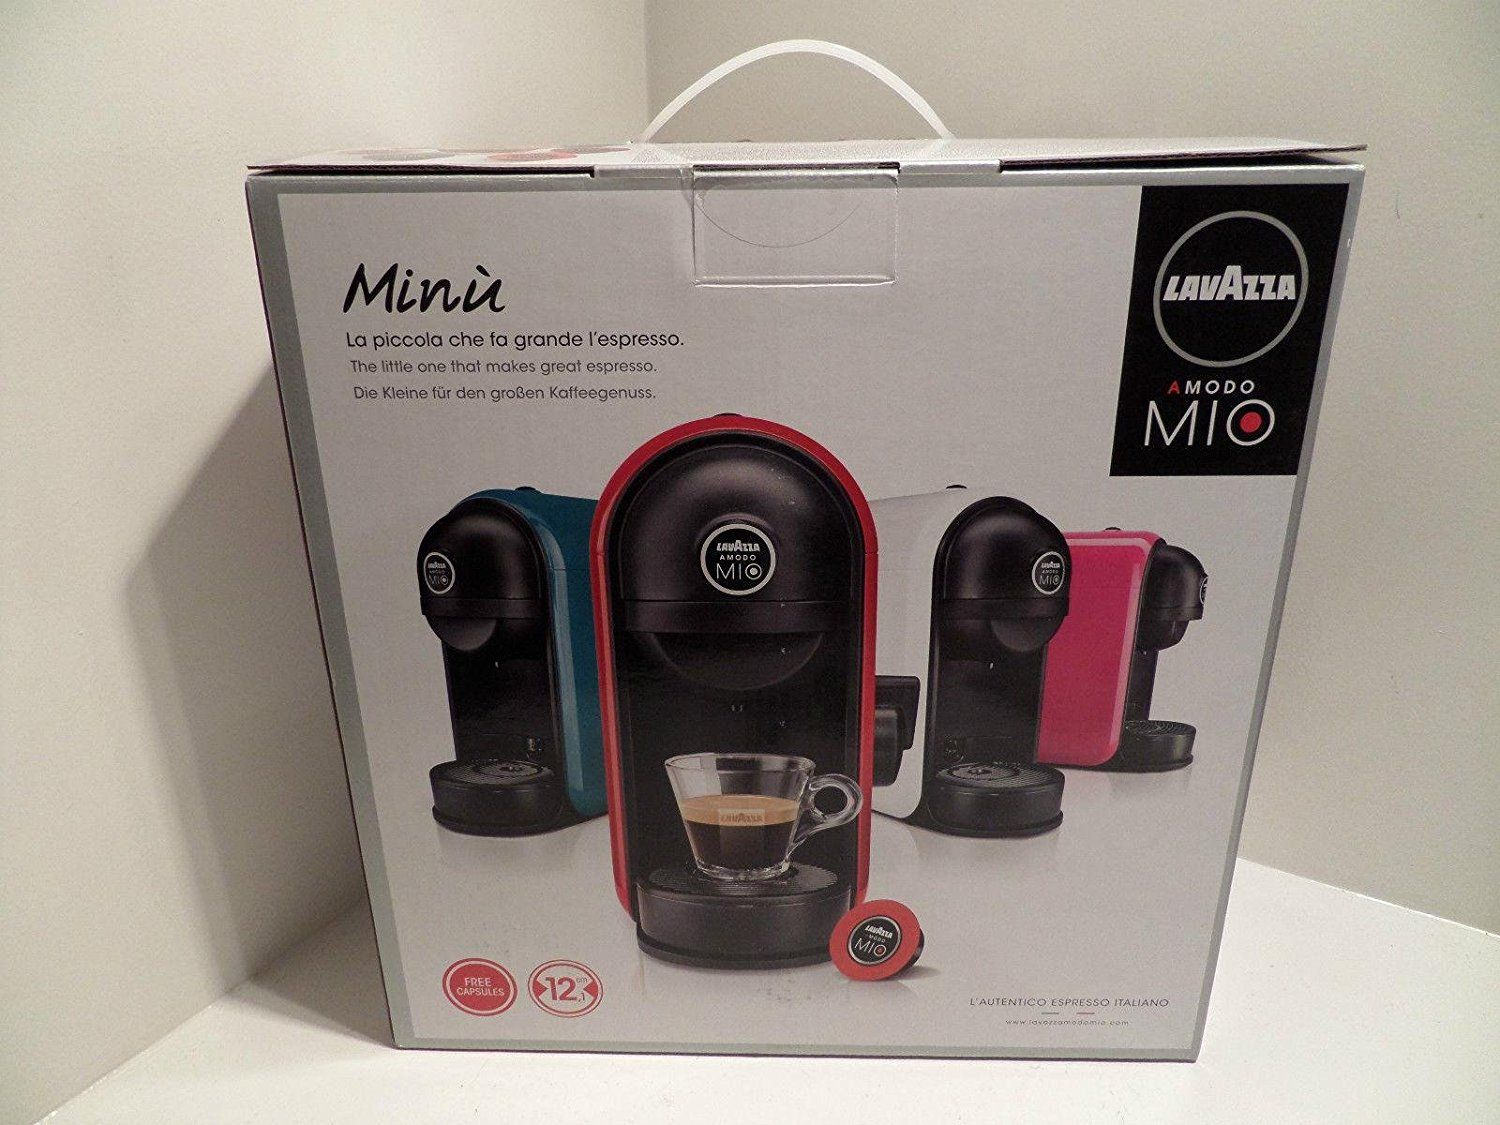 Lavazza Amodo Mio Minu White Coffee Pod Machine Coffee